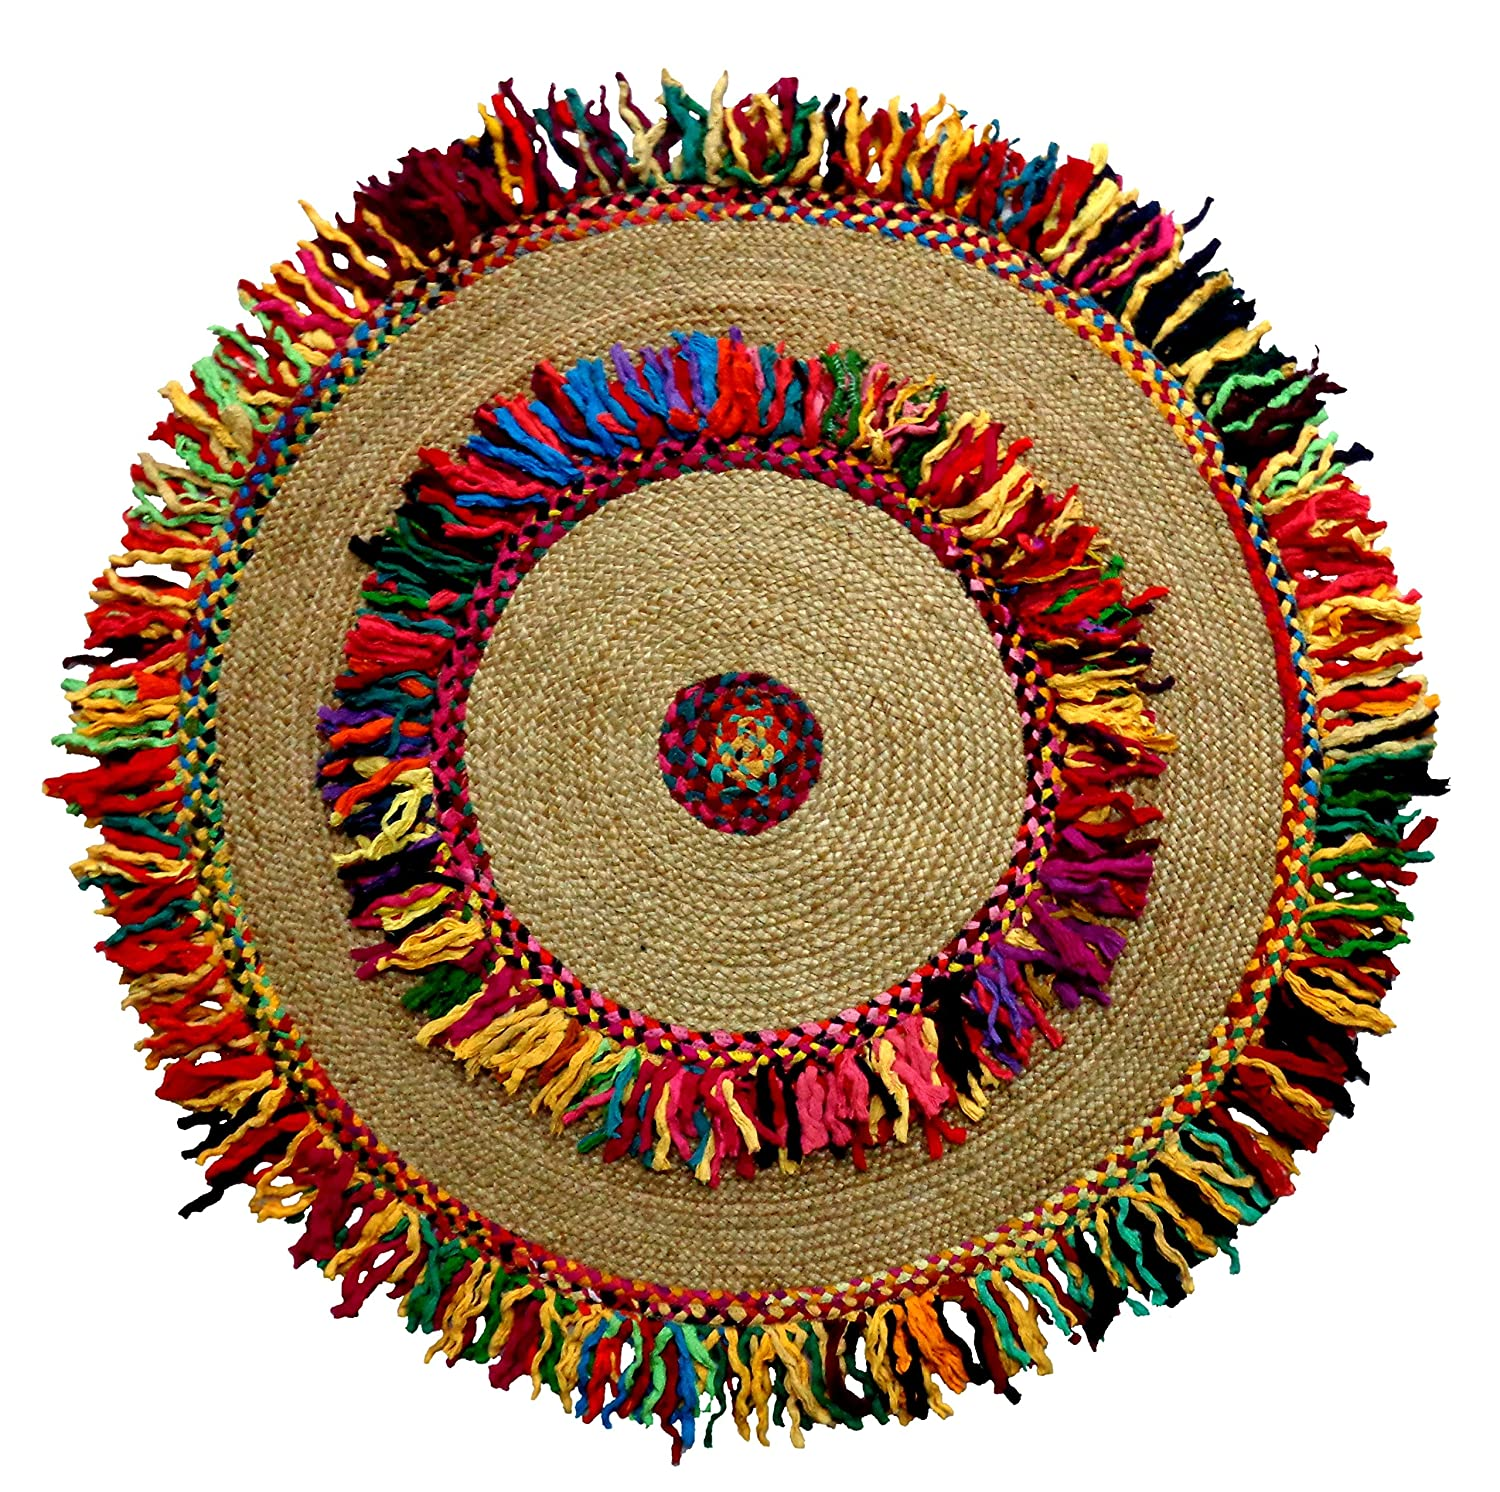 Cotton Craft - 2x3 Feet Oval Rag Rug - Jute & Cotton Multi Chindi Braid Rug, Hand Woven & Reversible - Handwoven from Multi-Color Vibrant Fabric Rags Orient Originals Inc. AX-AY-ABHI-112905